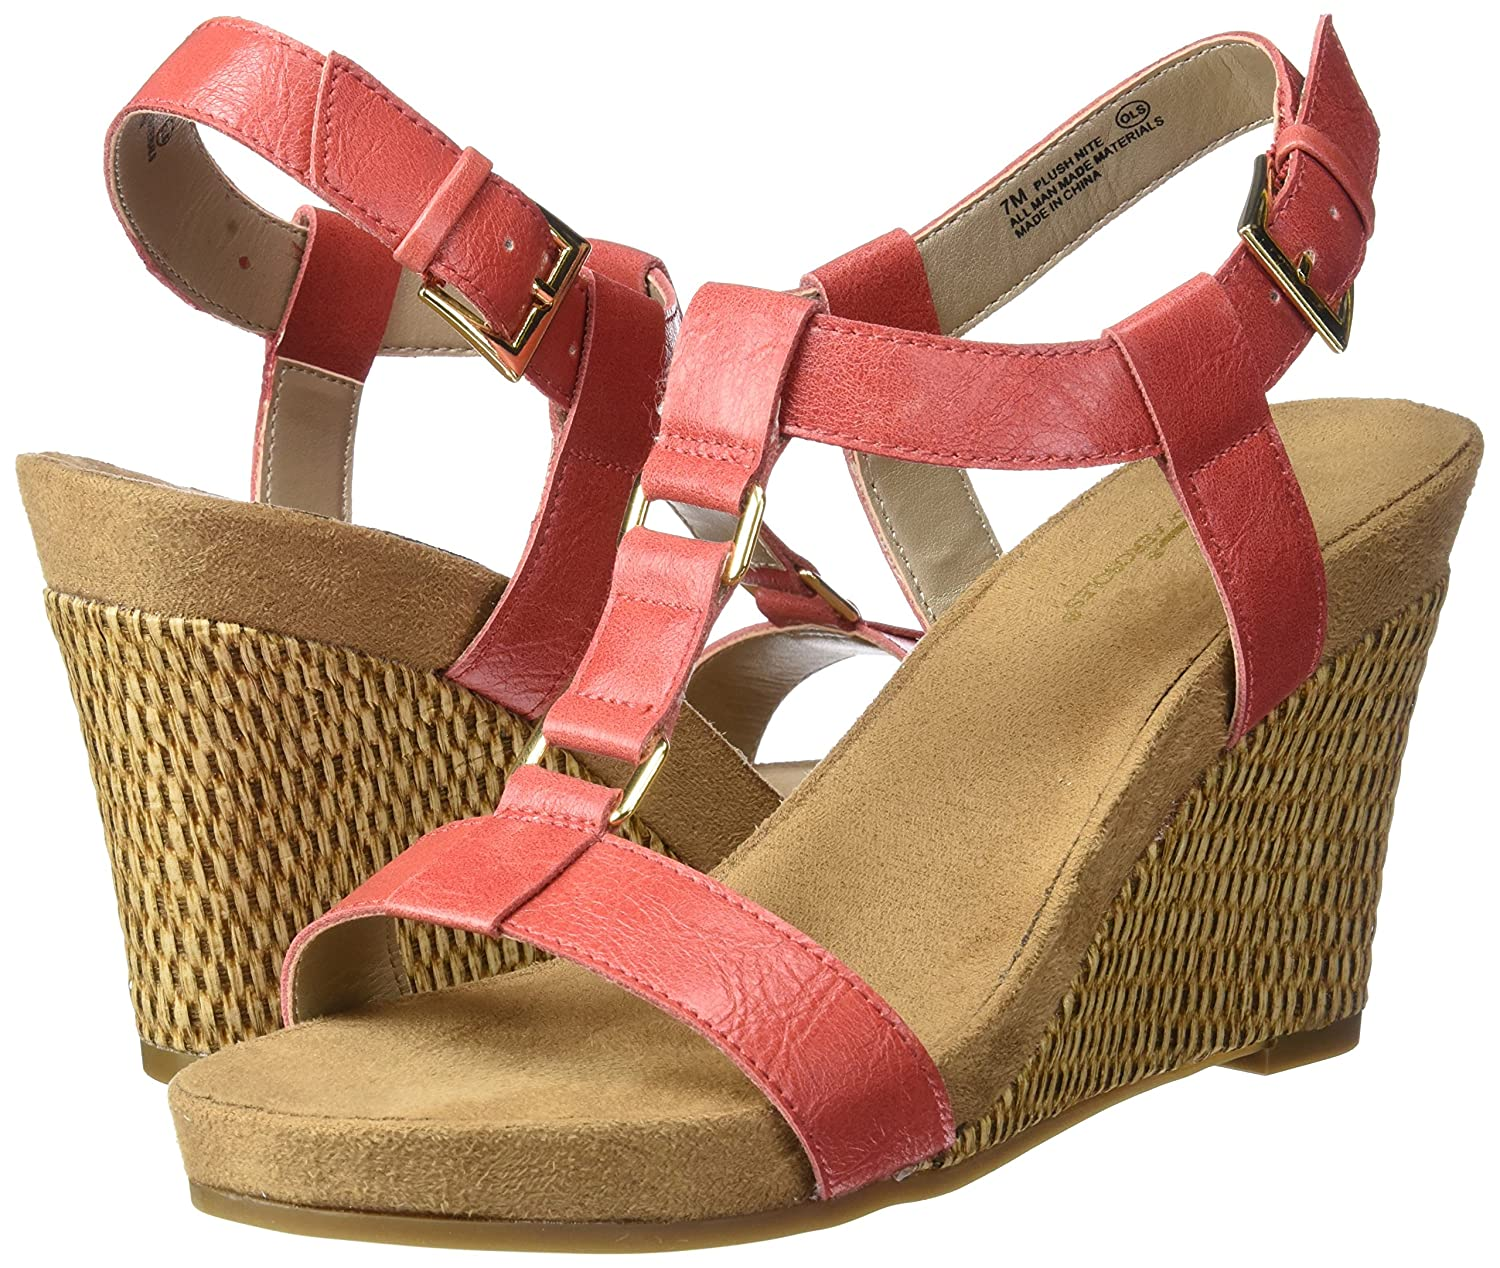 bab2212ccc1a Aerosoles A2 Women s Plush Nite Wedge Sandal  Buy Online at Low Prices in  India - Amazon.in